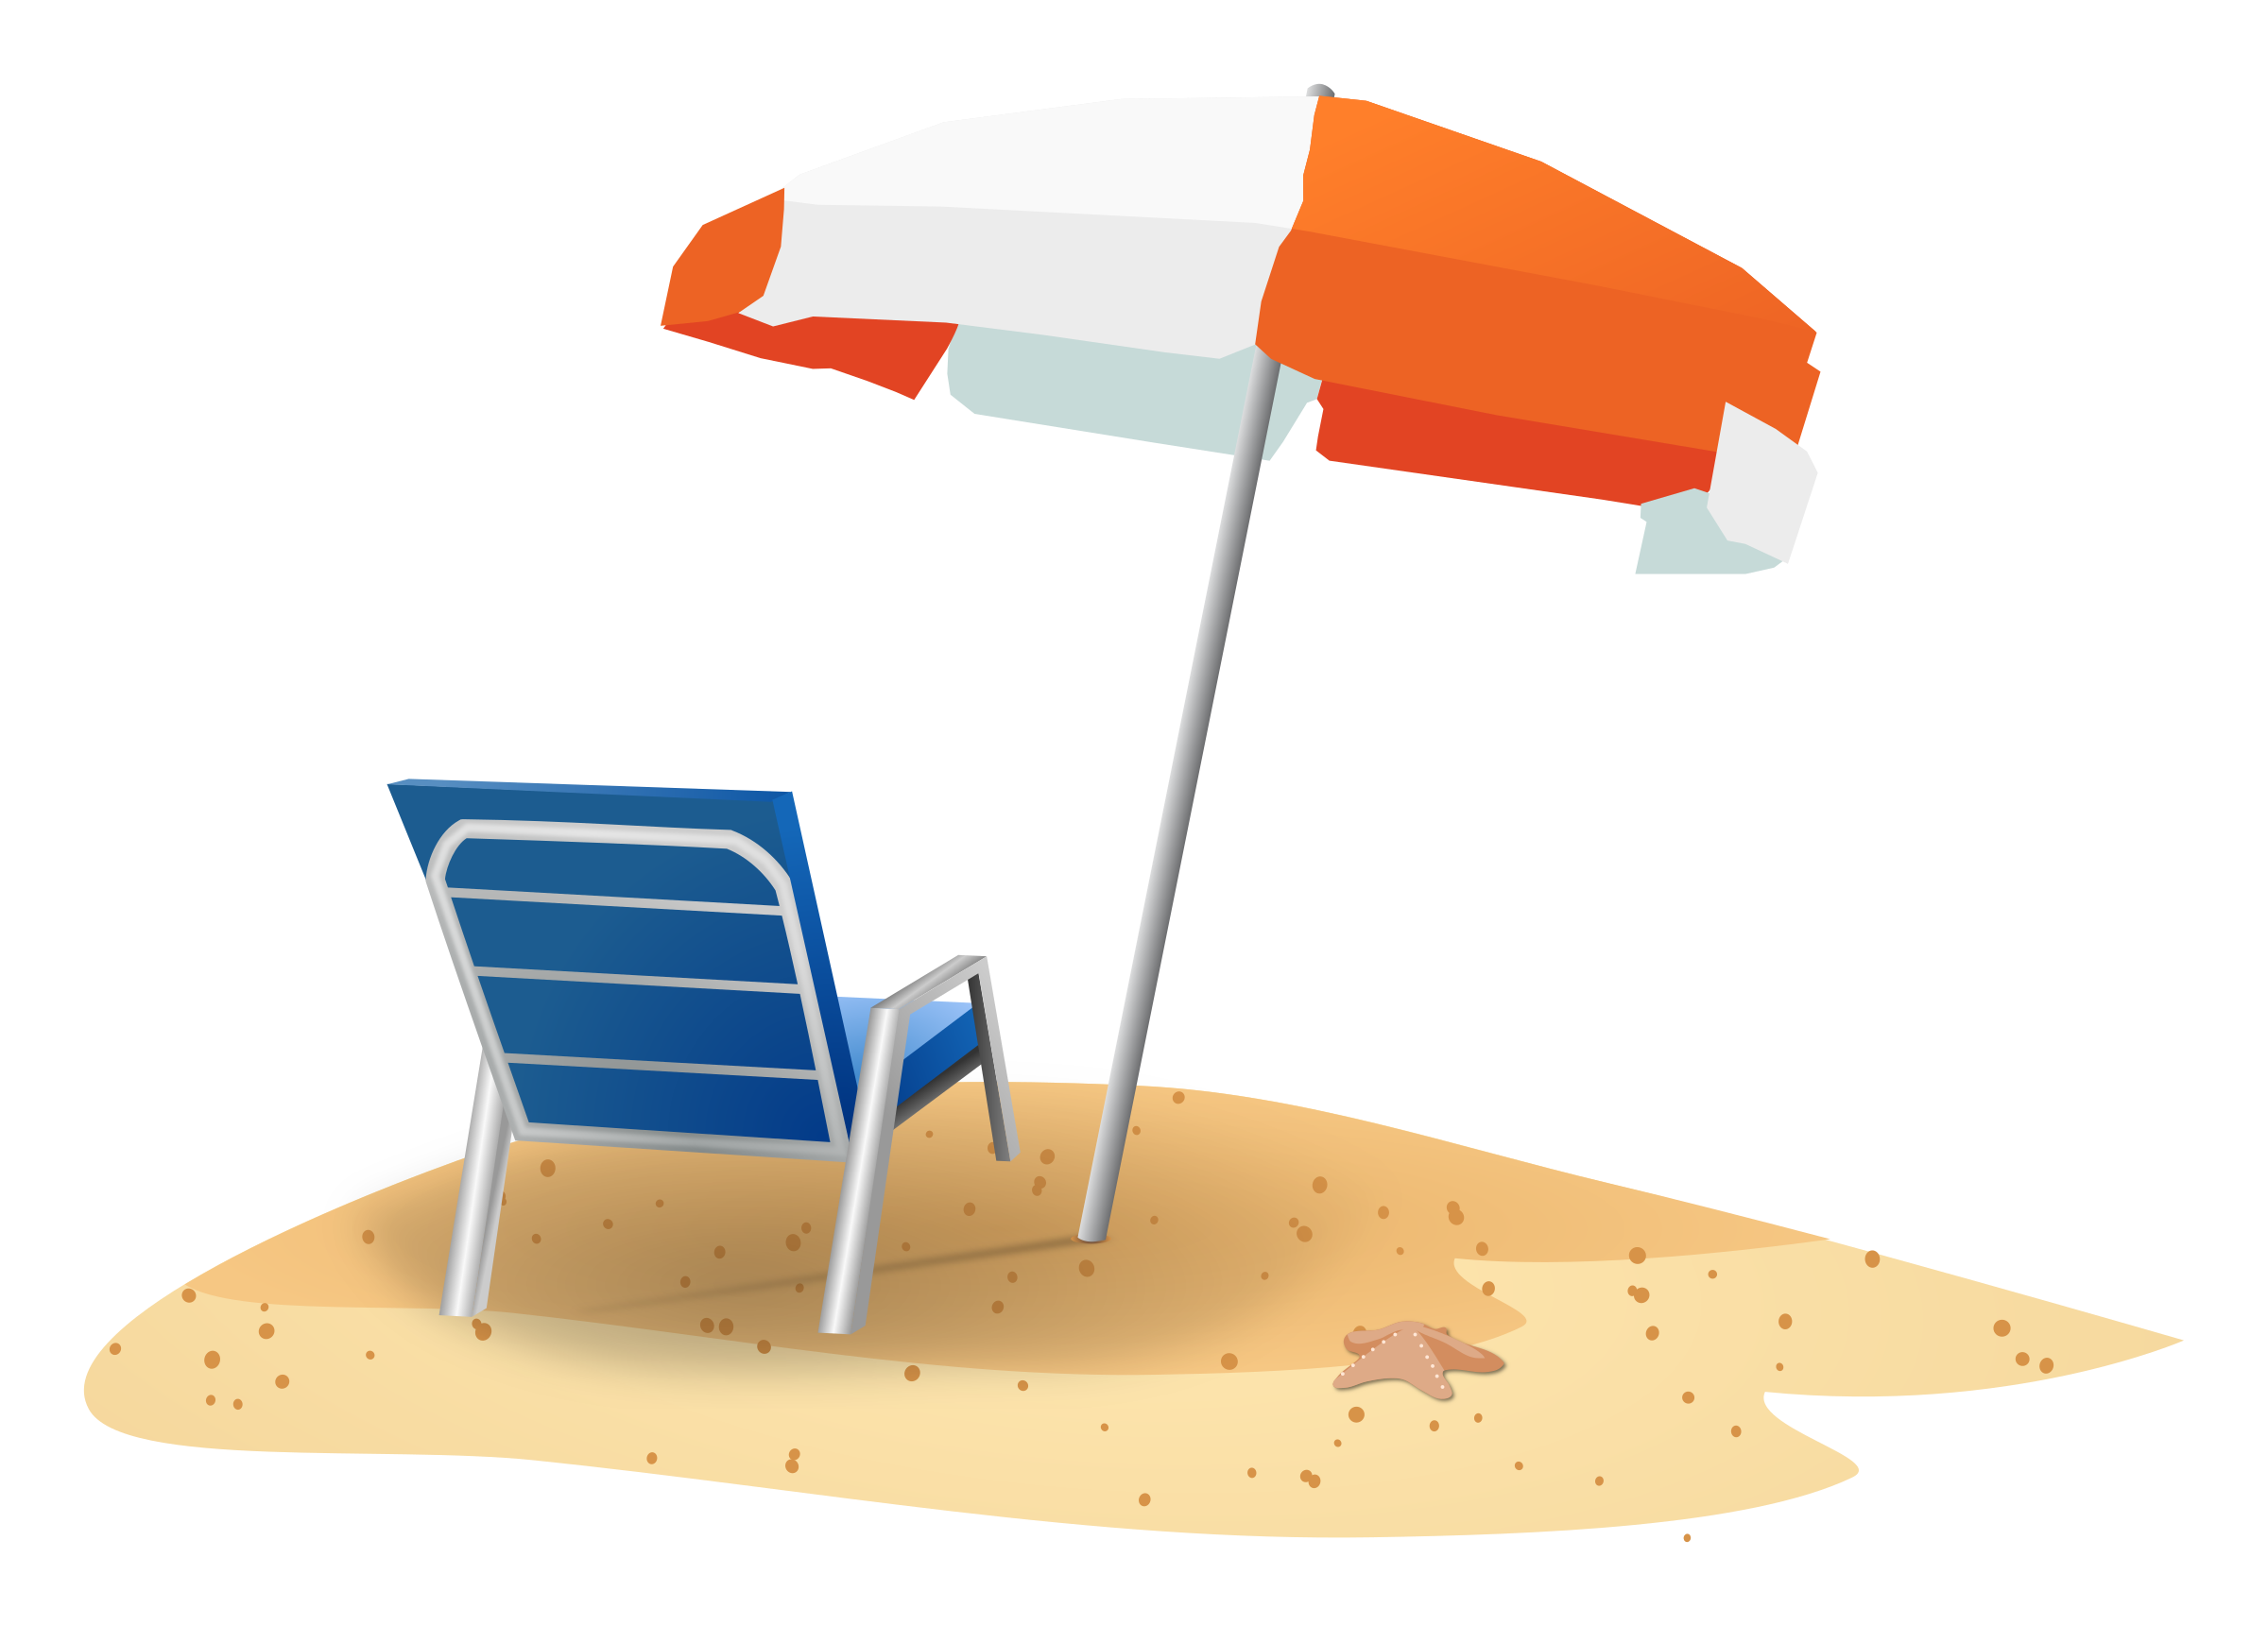 Beach ctrasnperant clipart clipart free stock Beach PNG Transparent Beach.PNG Images. | PlusPNG clipart free stock